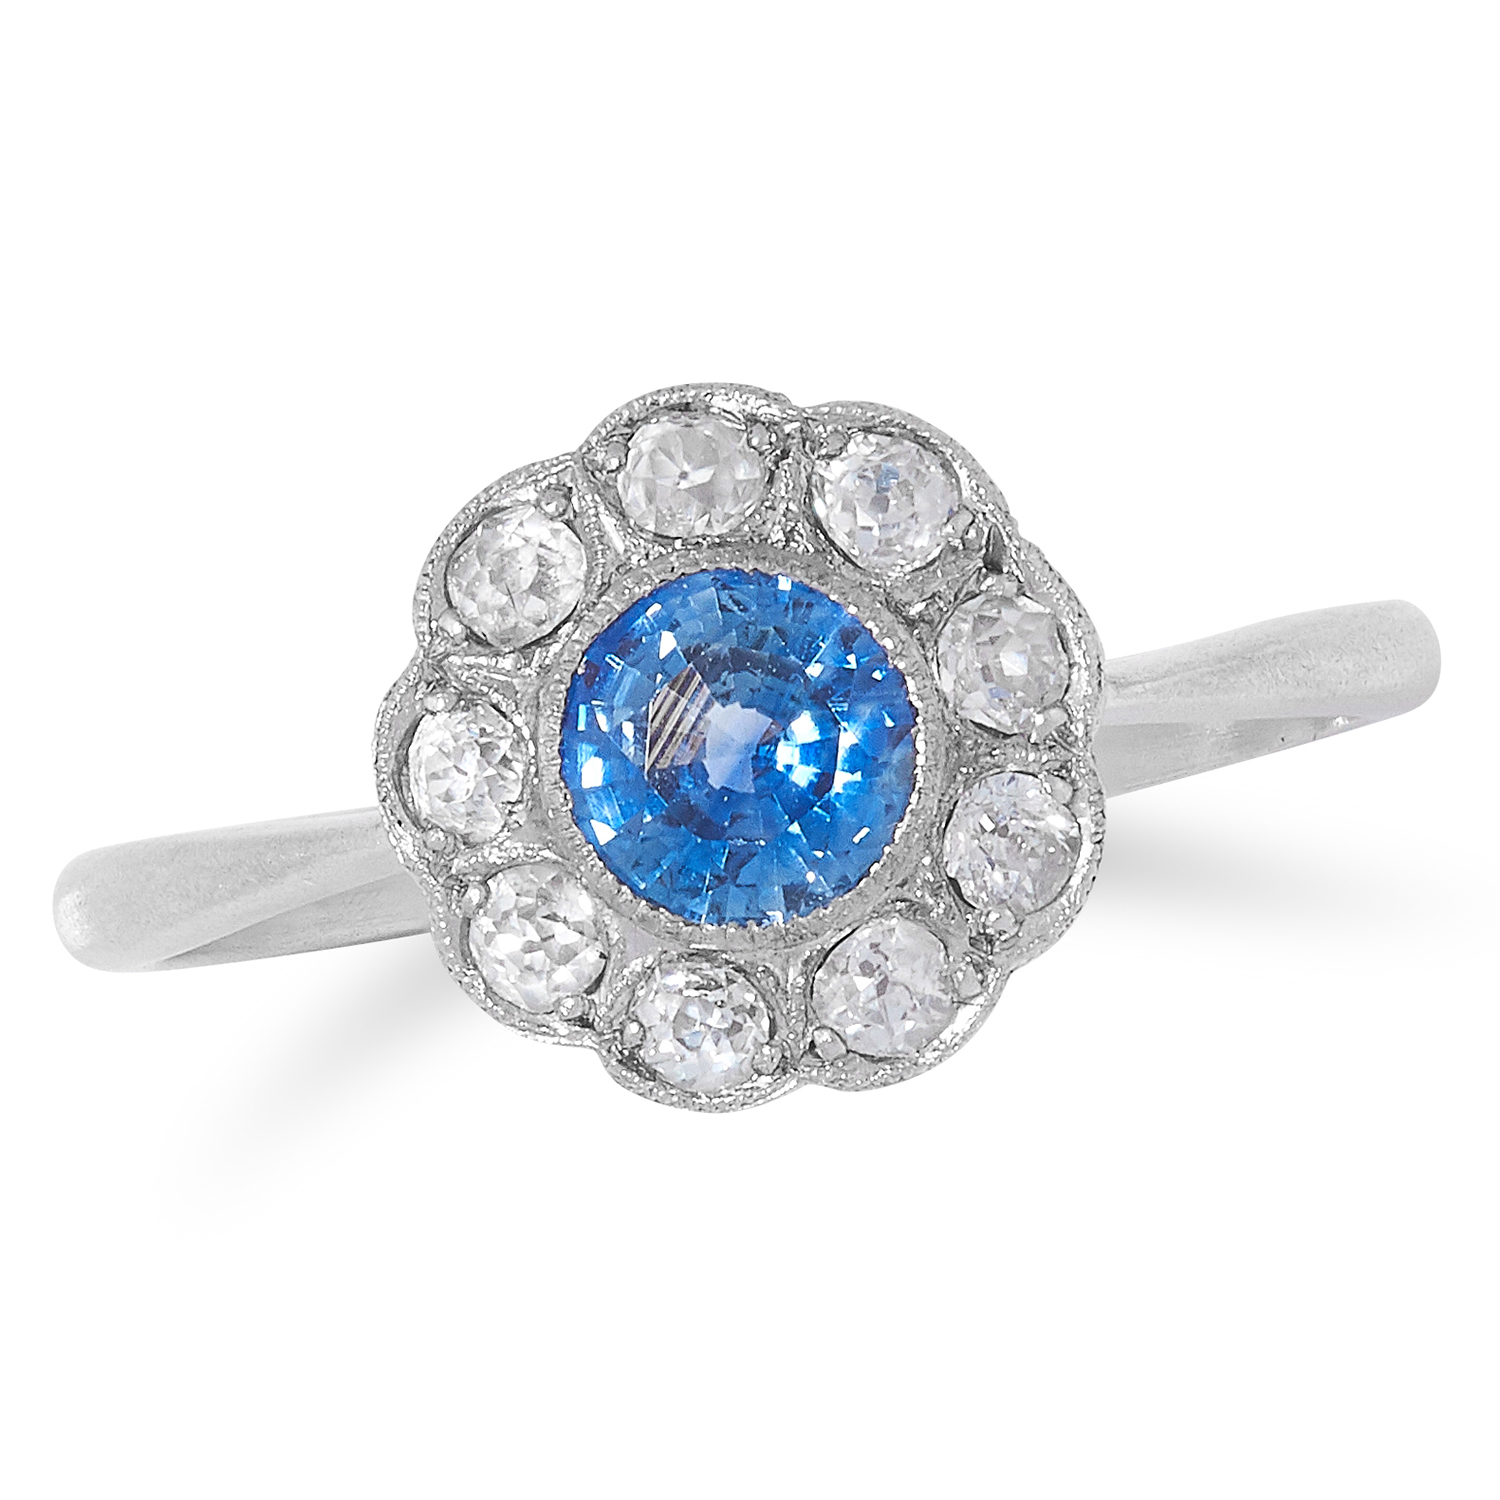 SAPPHIRE AND DIAMOND CLUSTER RING set with a round cut sapphire in a border of round cut diamonds,